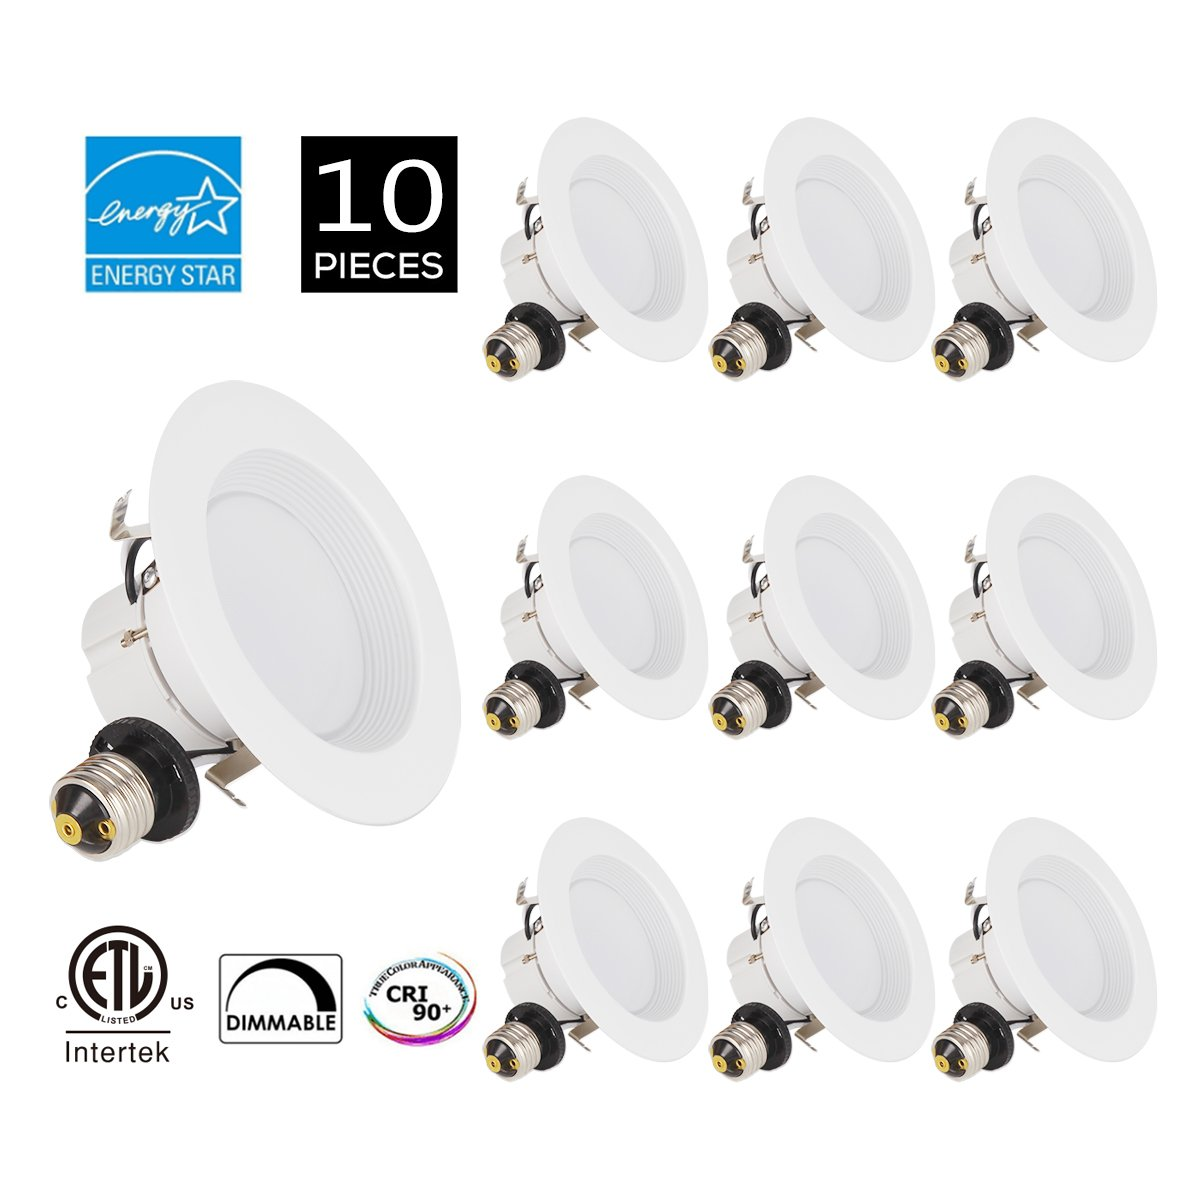 JJC 10Pack Recessed Lighting 4 Inch LED Dimmable Downlight Ceiling Lights 10W 5000K-Daylight 770LM CRI 90 Energy Star Certified&ETL-Listed